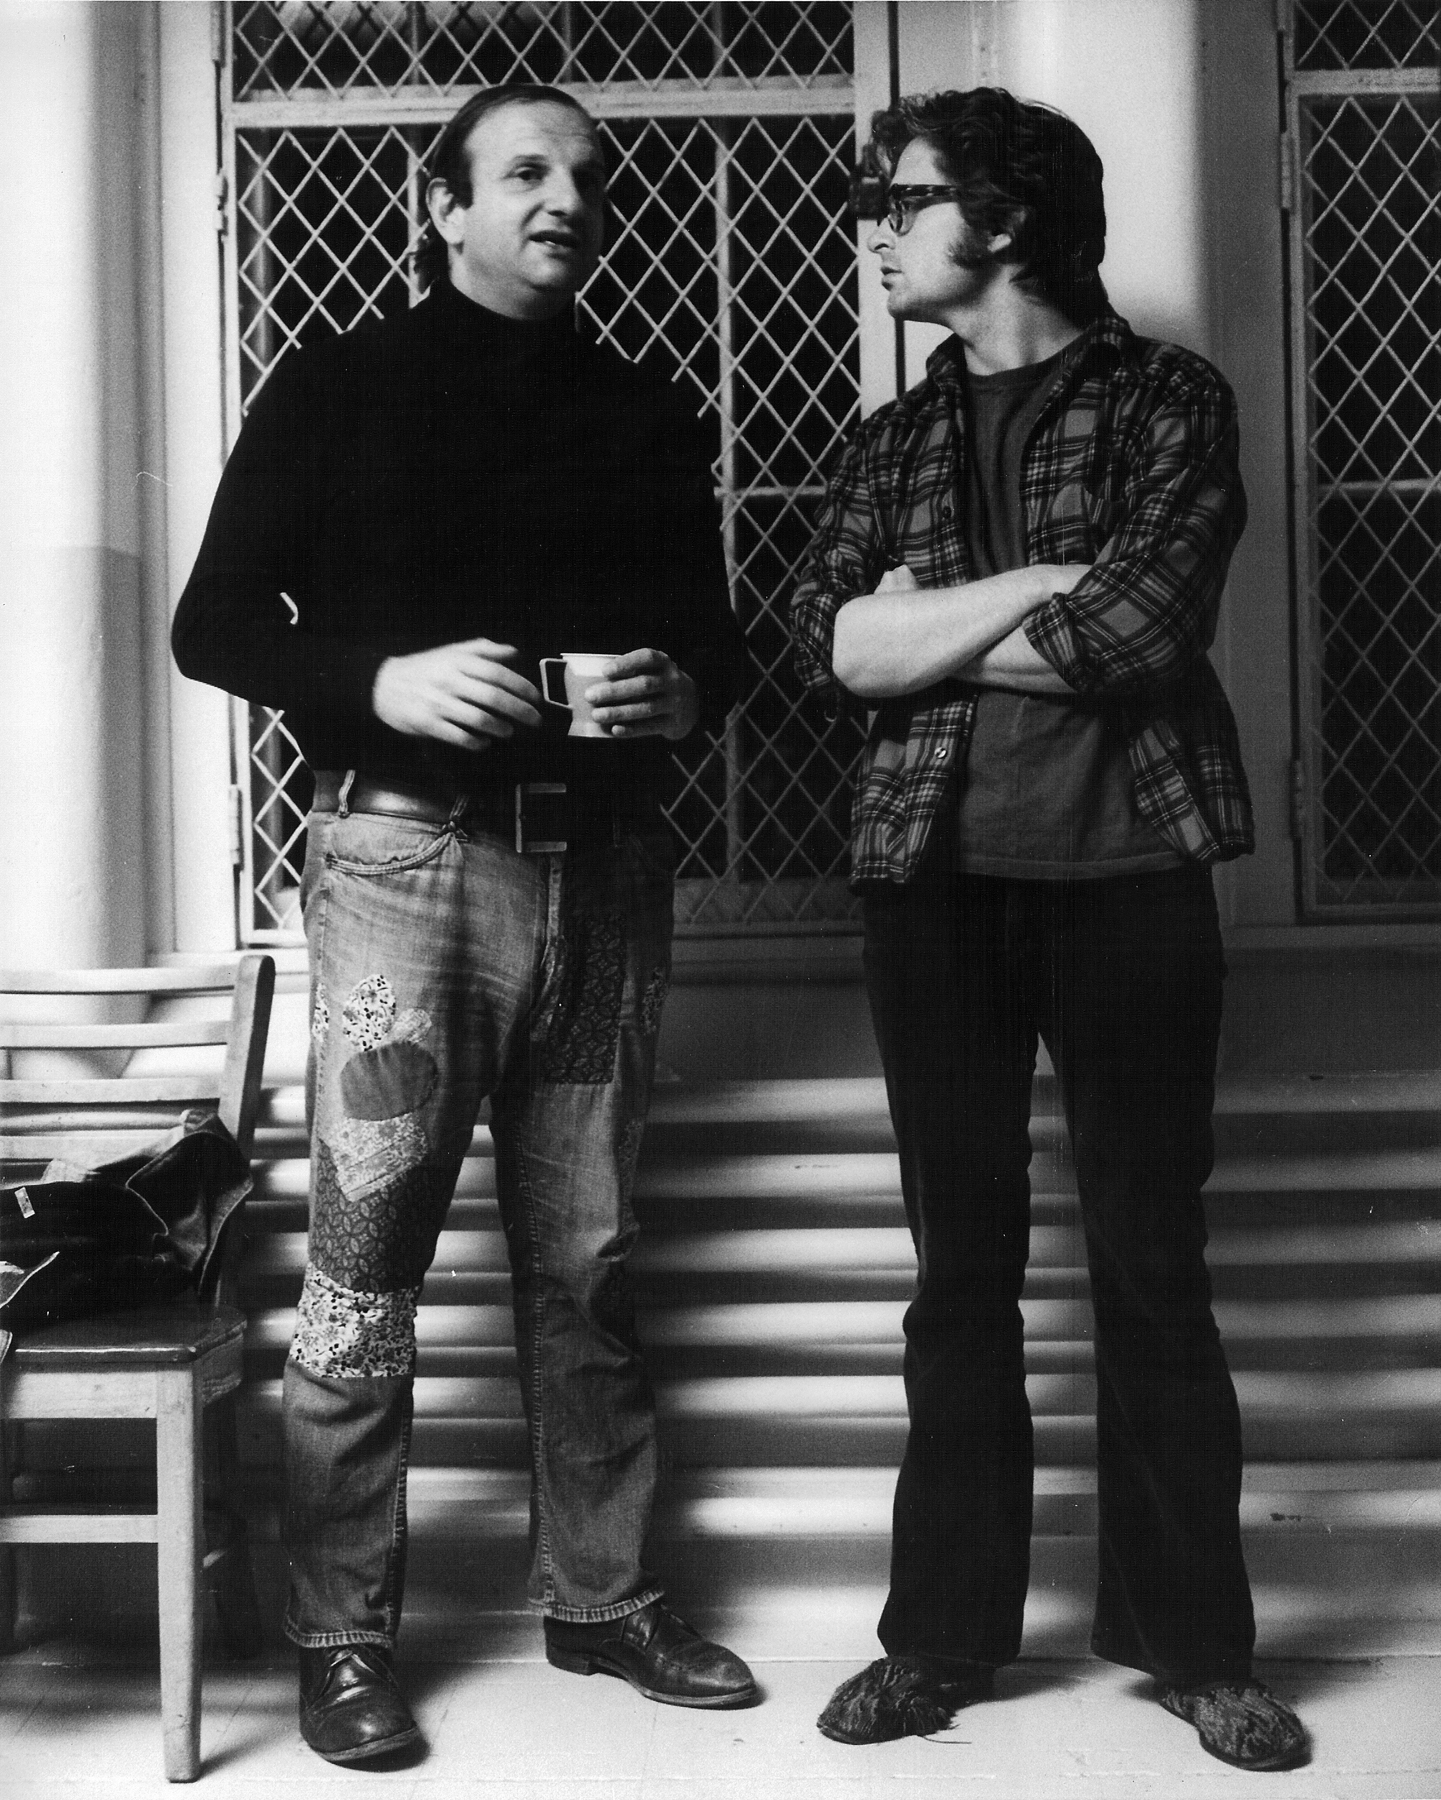 Bo Goldman with [[Michael Douglas]] on the set of [[Miloš Forman]]'s ''[[One Flew Over the Cuckoo's Nest (film)|One Flew Over the Cuckoo's Nest]]''